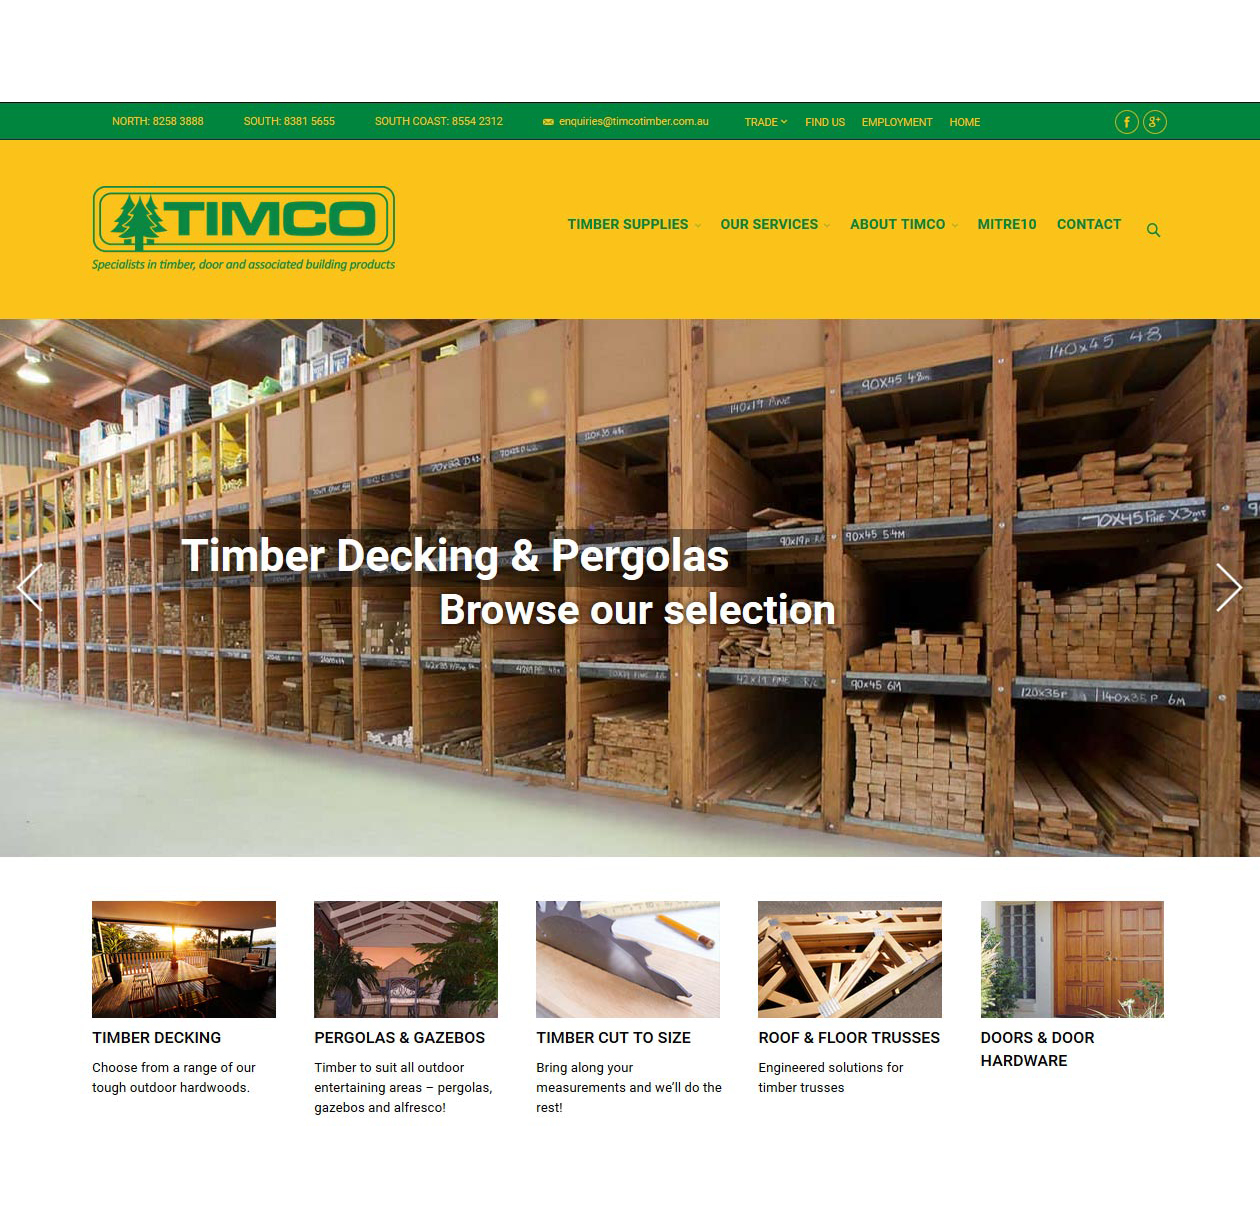 timco-website-design